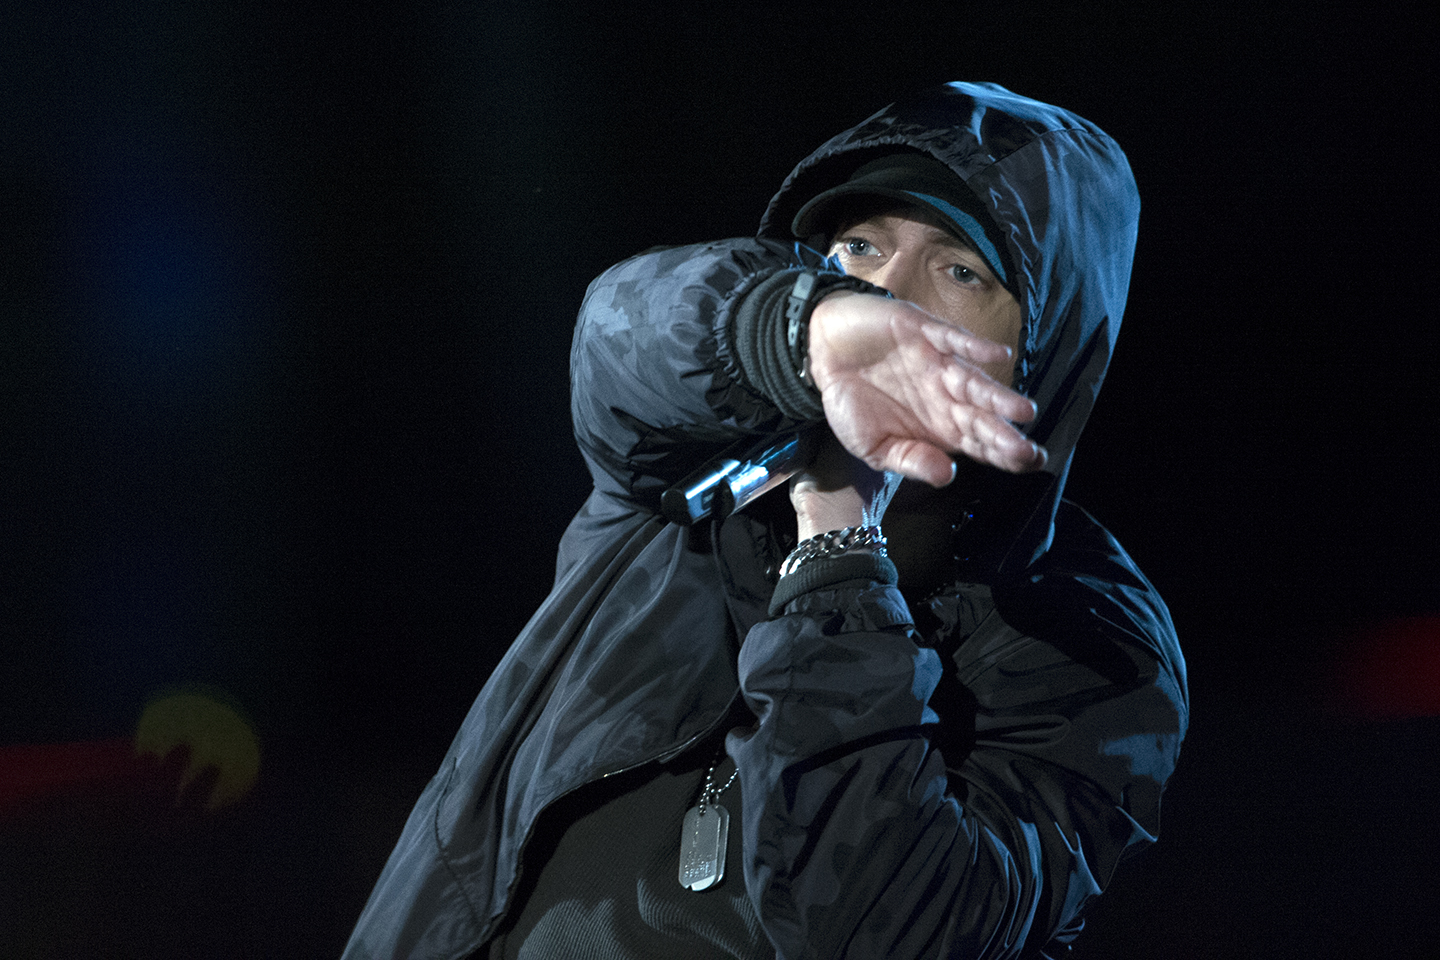 Eminem performs at the Concert for Valor, and is among the artists who criticize Trump.